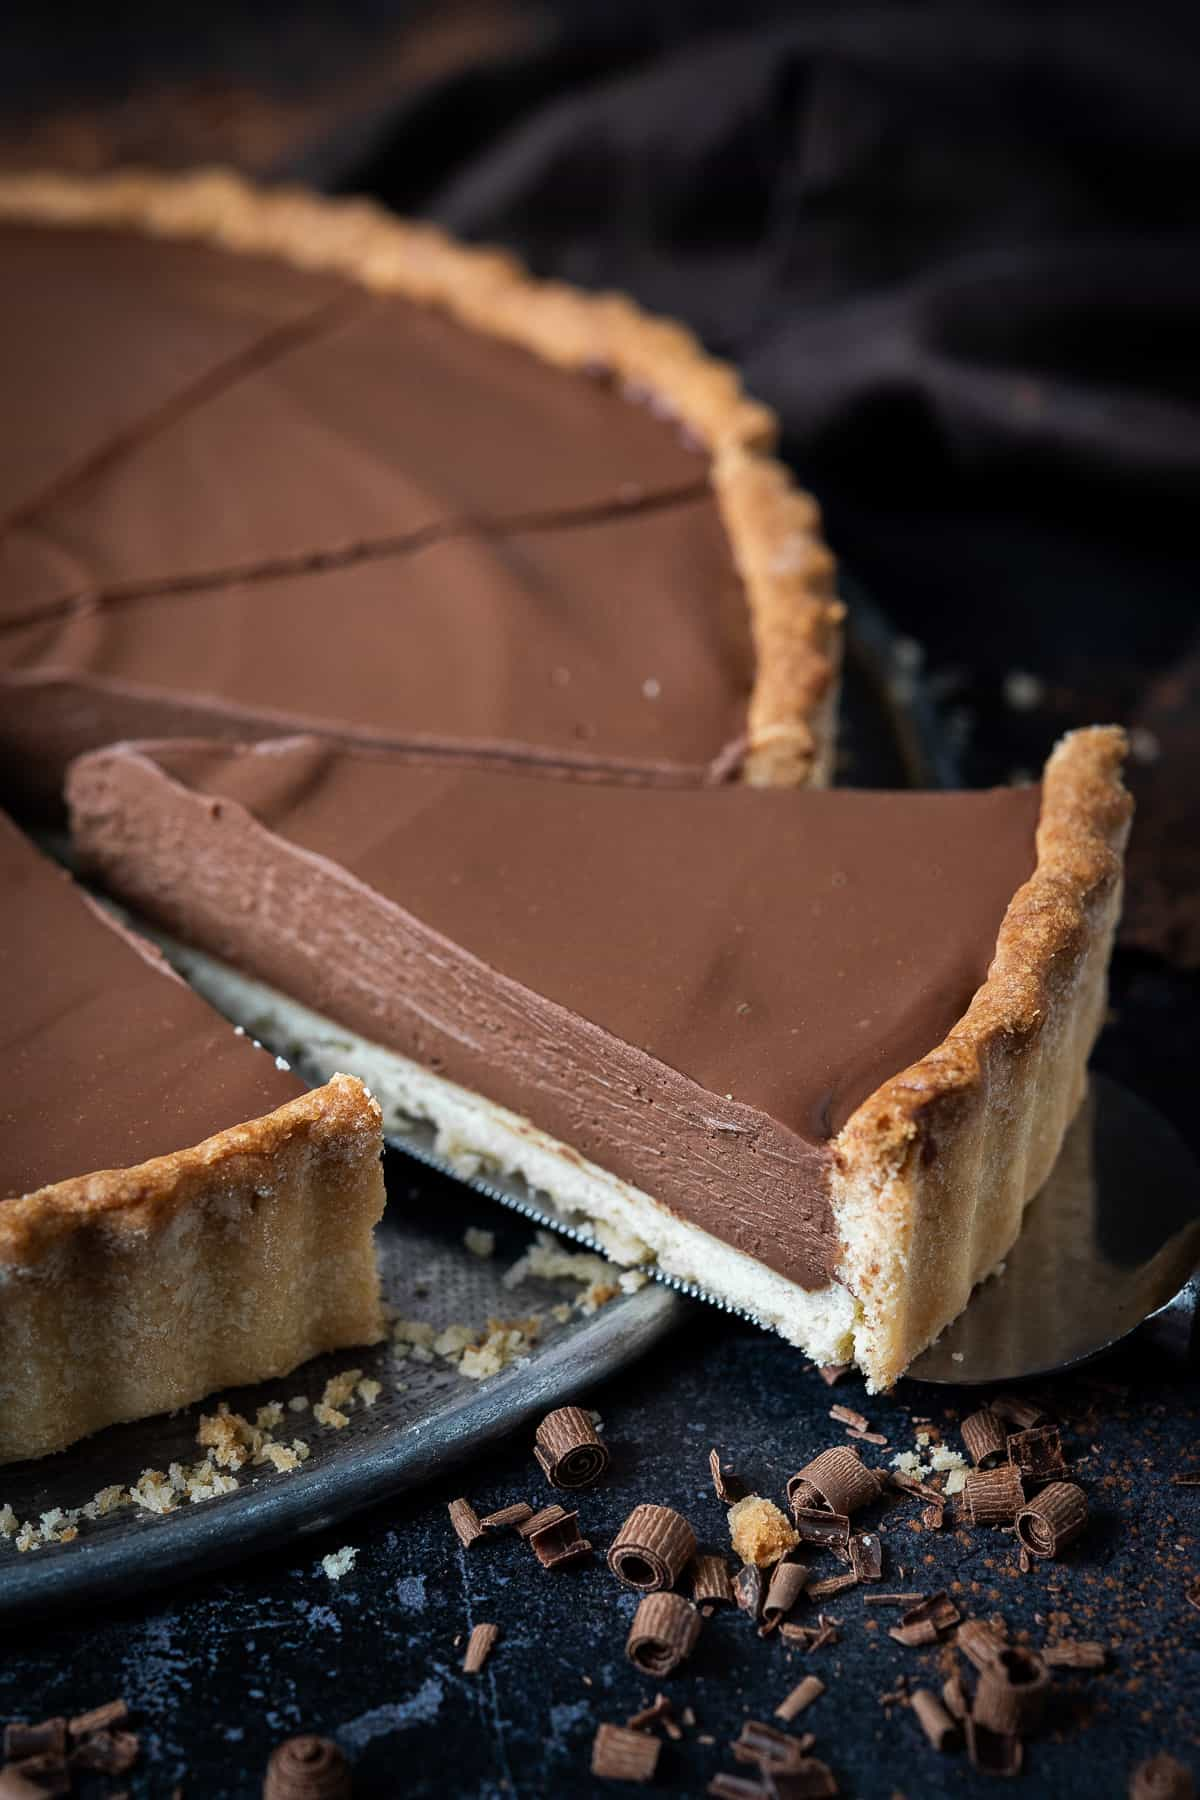 Close up of a slice of vegan peanut butter chocolate tart.